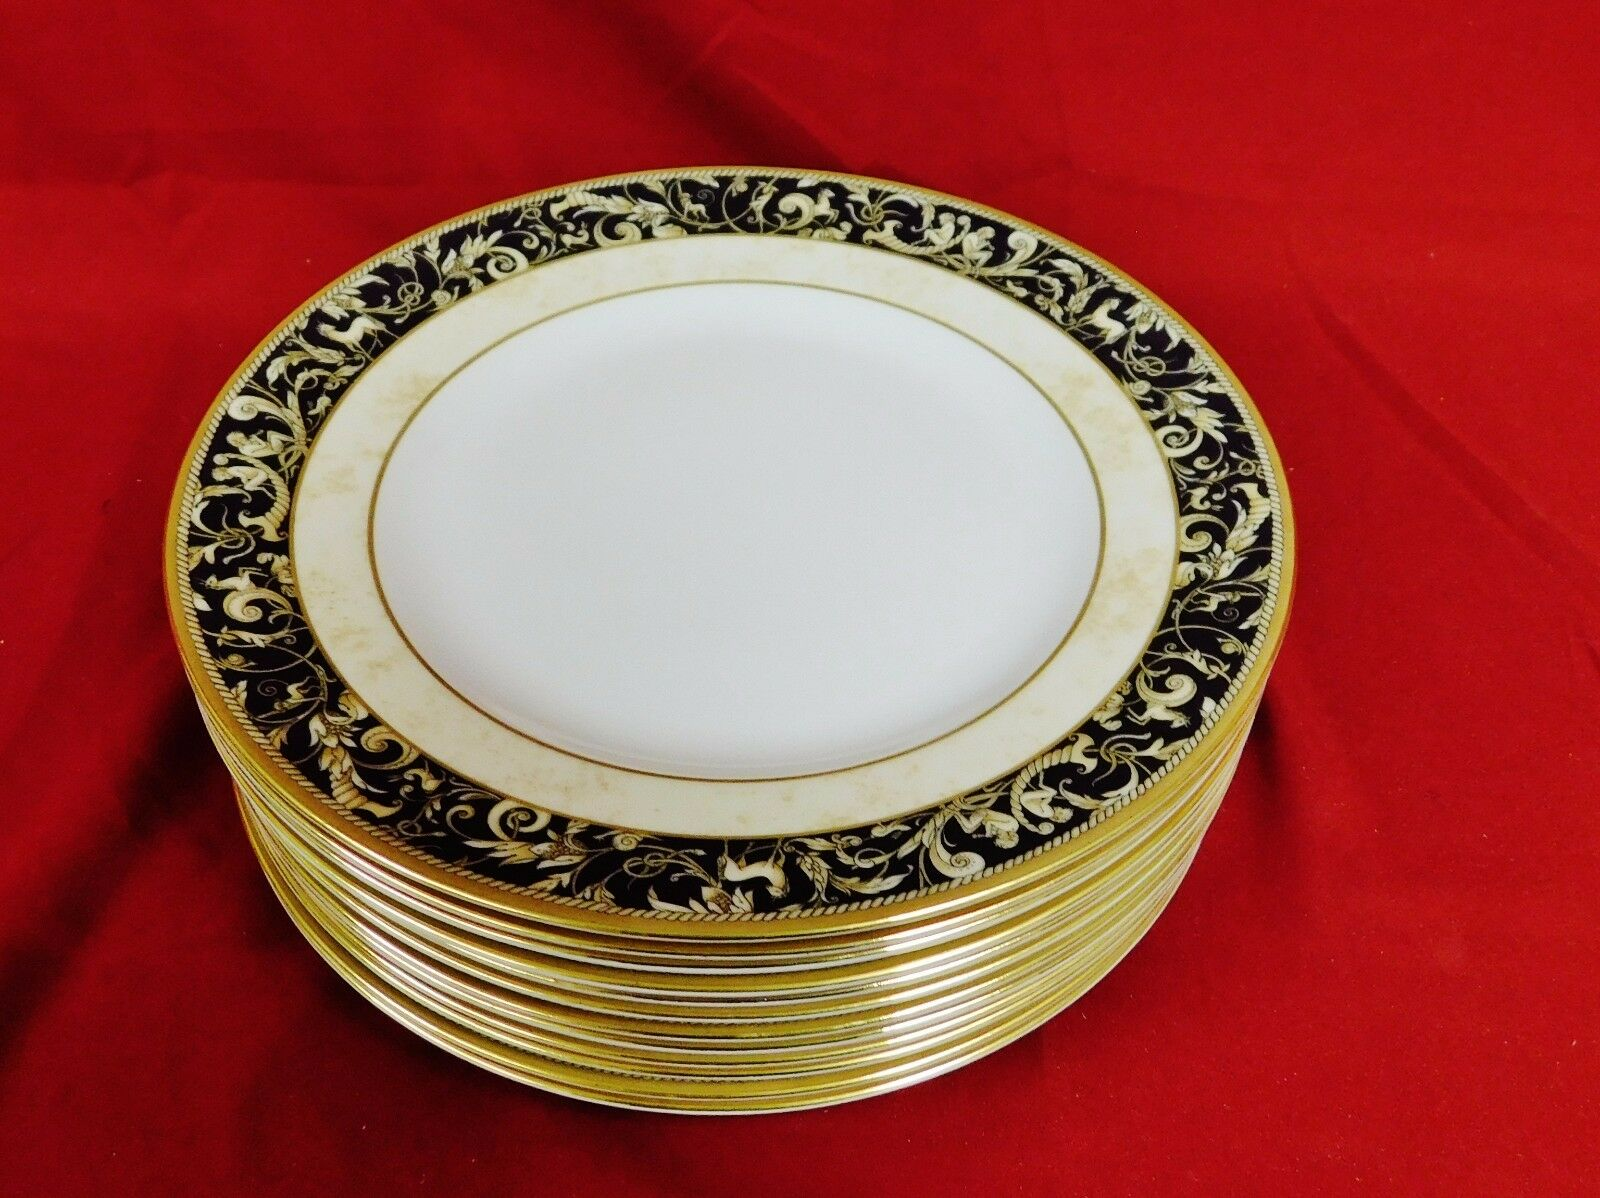 Wedgwood Cornucopia Salad Plates - Set of 12